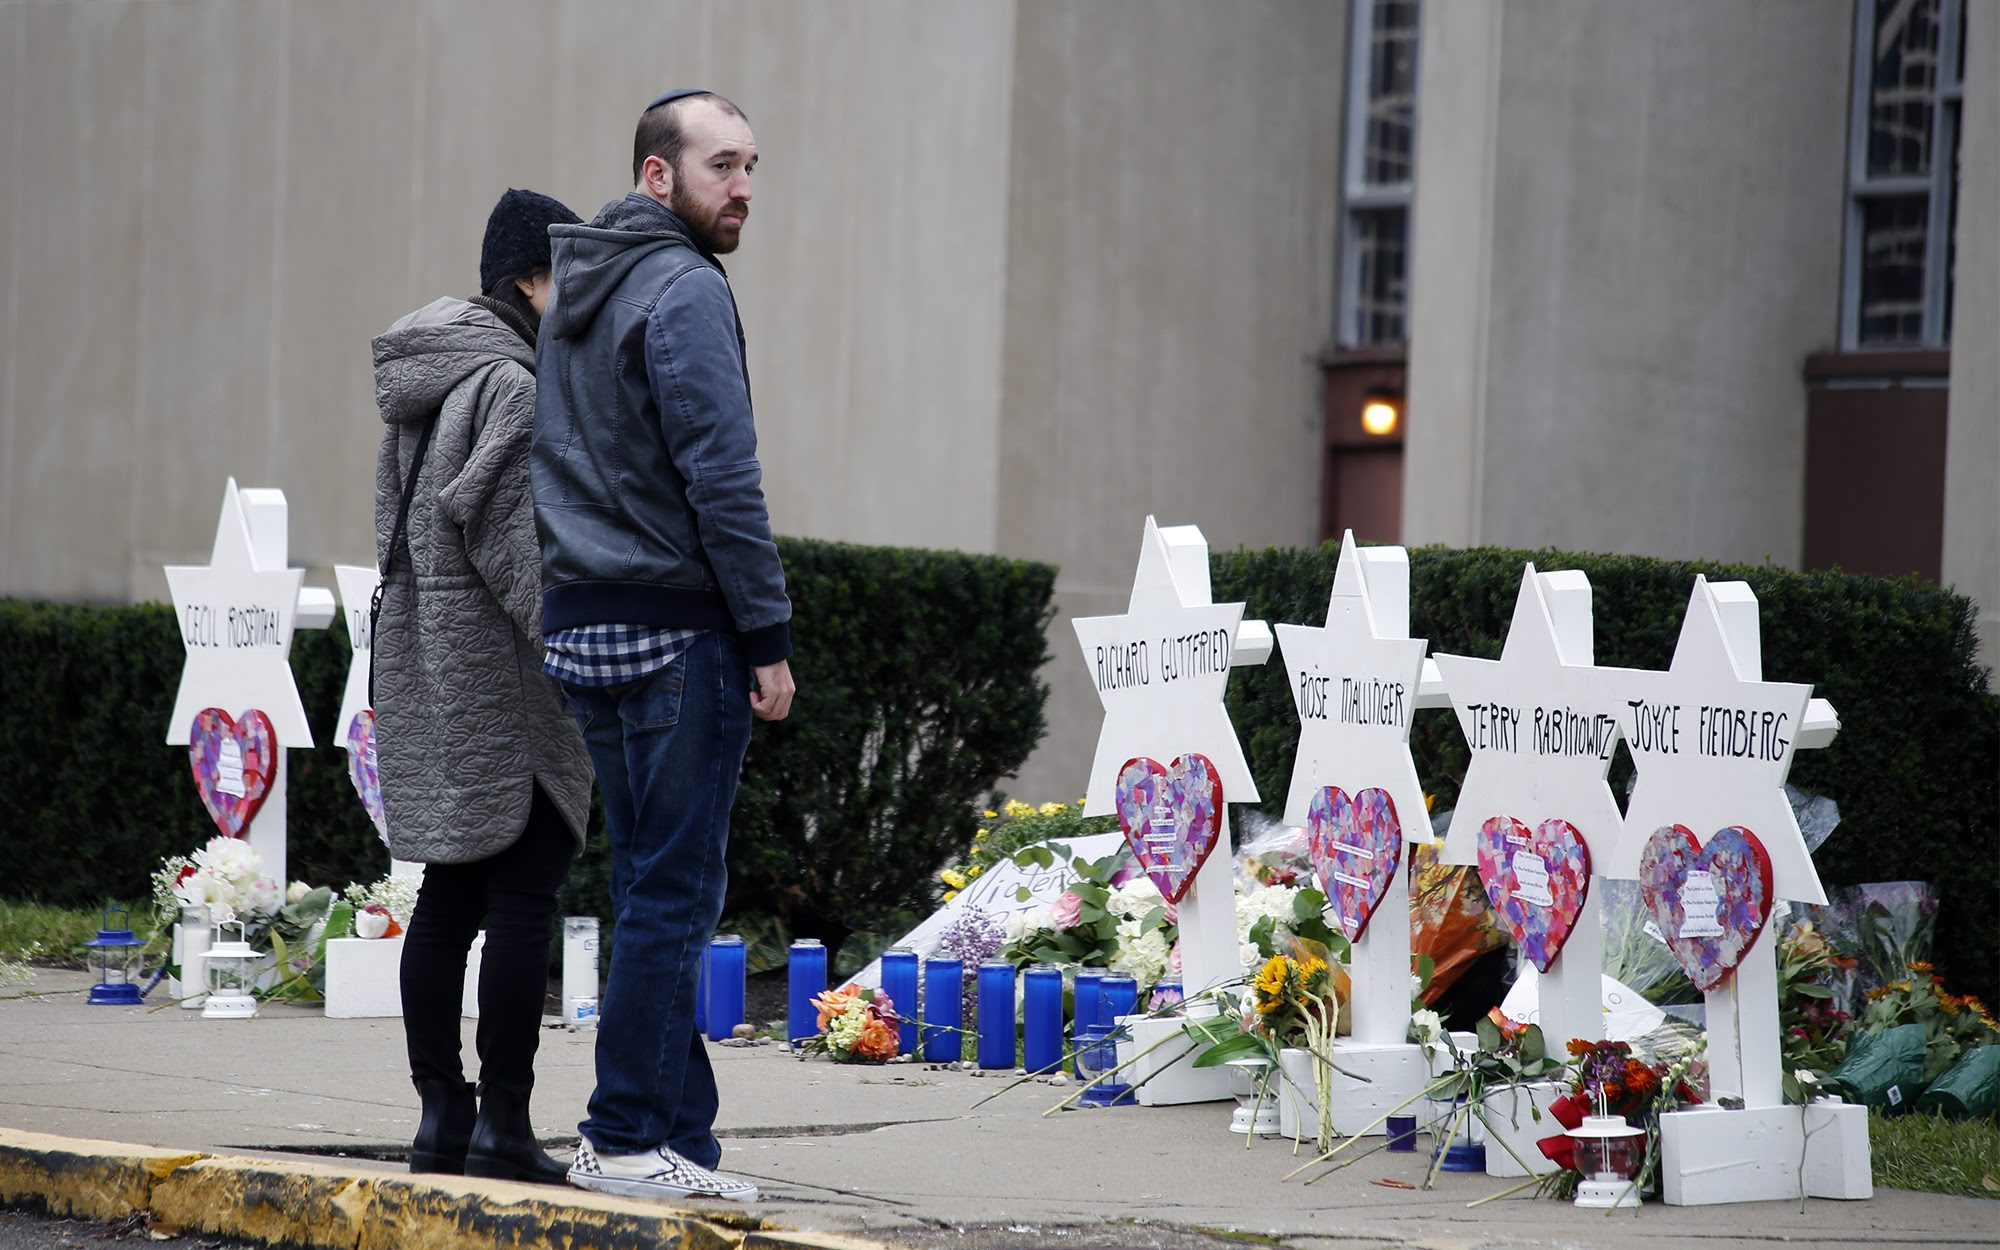 People visit a memorial site outside the Tree of Life synagogue in Squirrel Hill on Monday. (Photo by Ryan Loew/PublicSource)